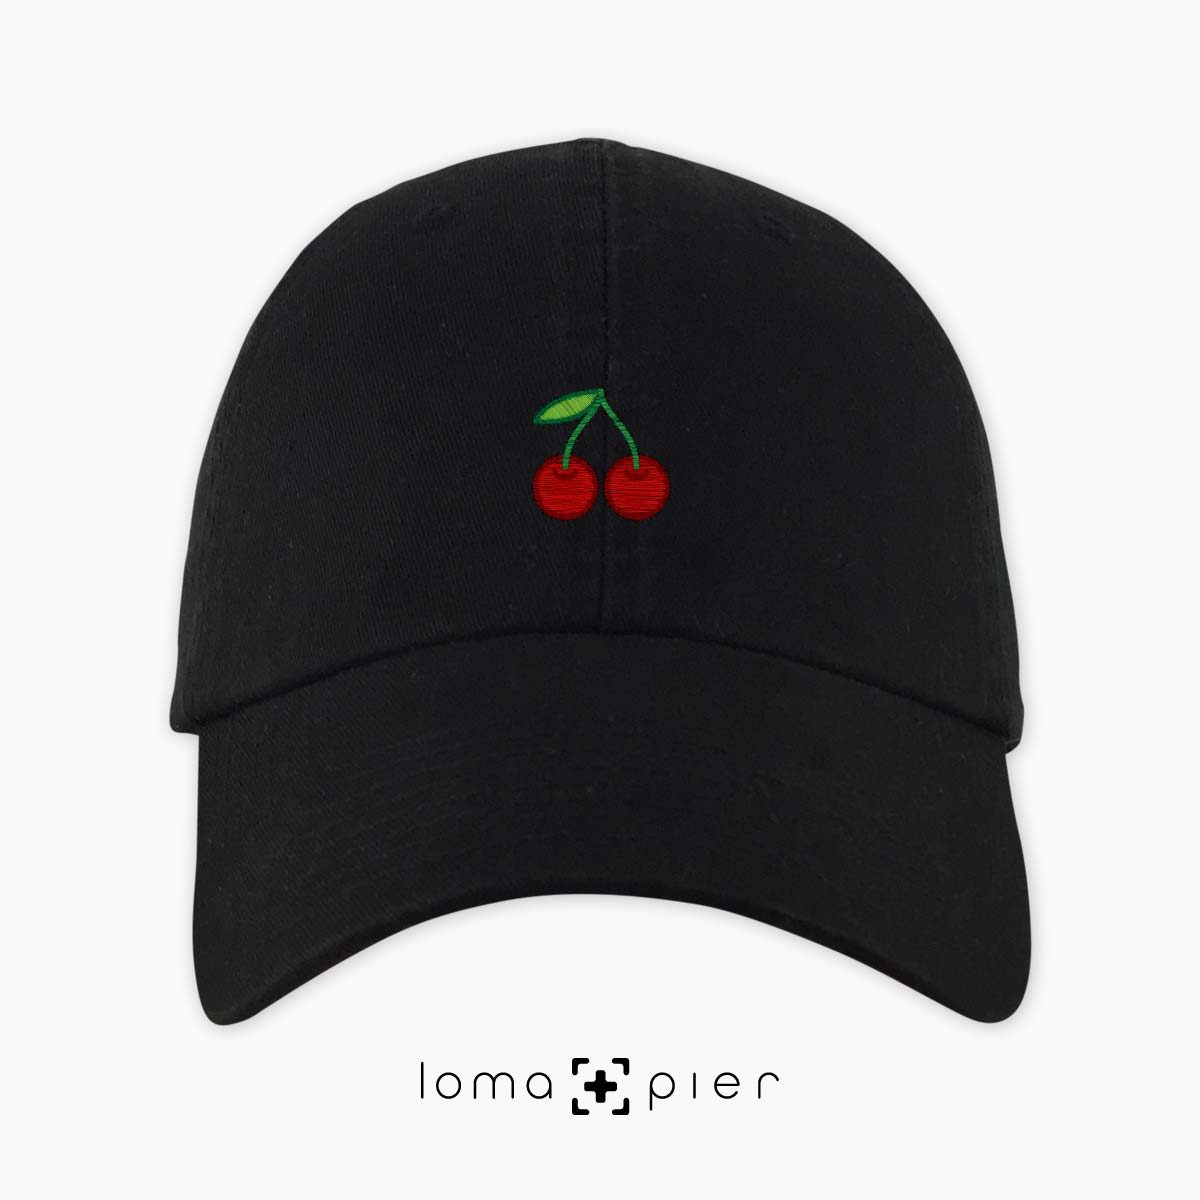 CHERRIES icon embroidered on a black dad hat by loma+pier hat store made in the USA